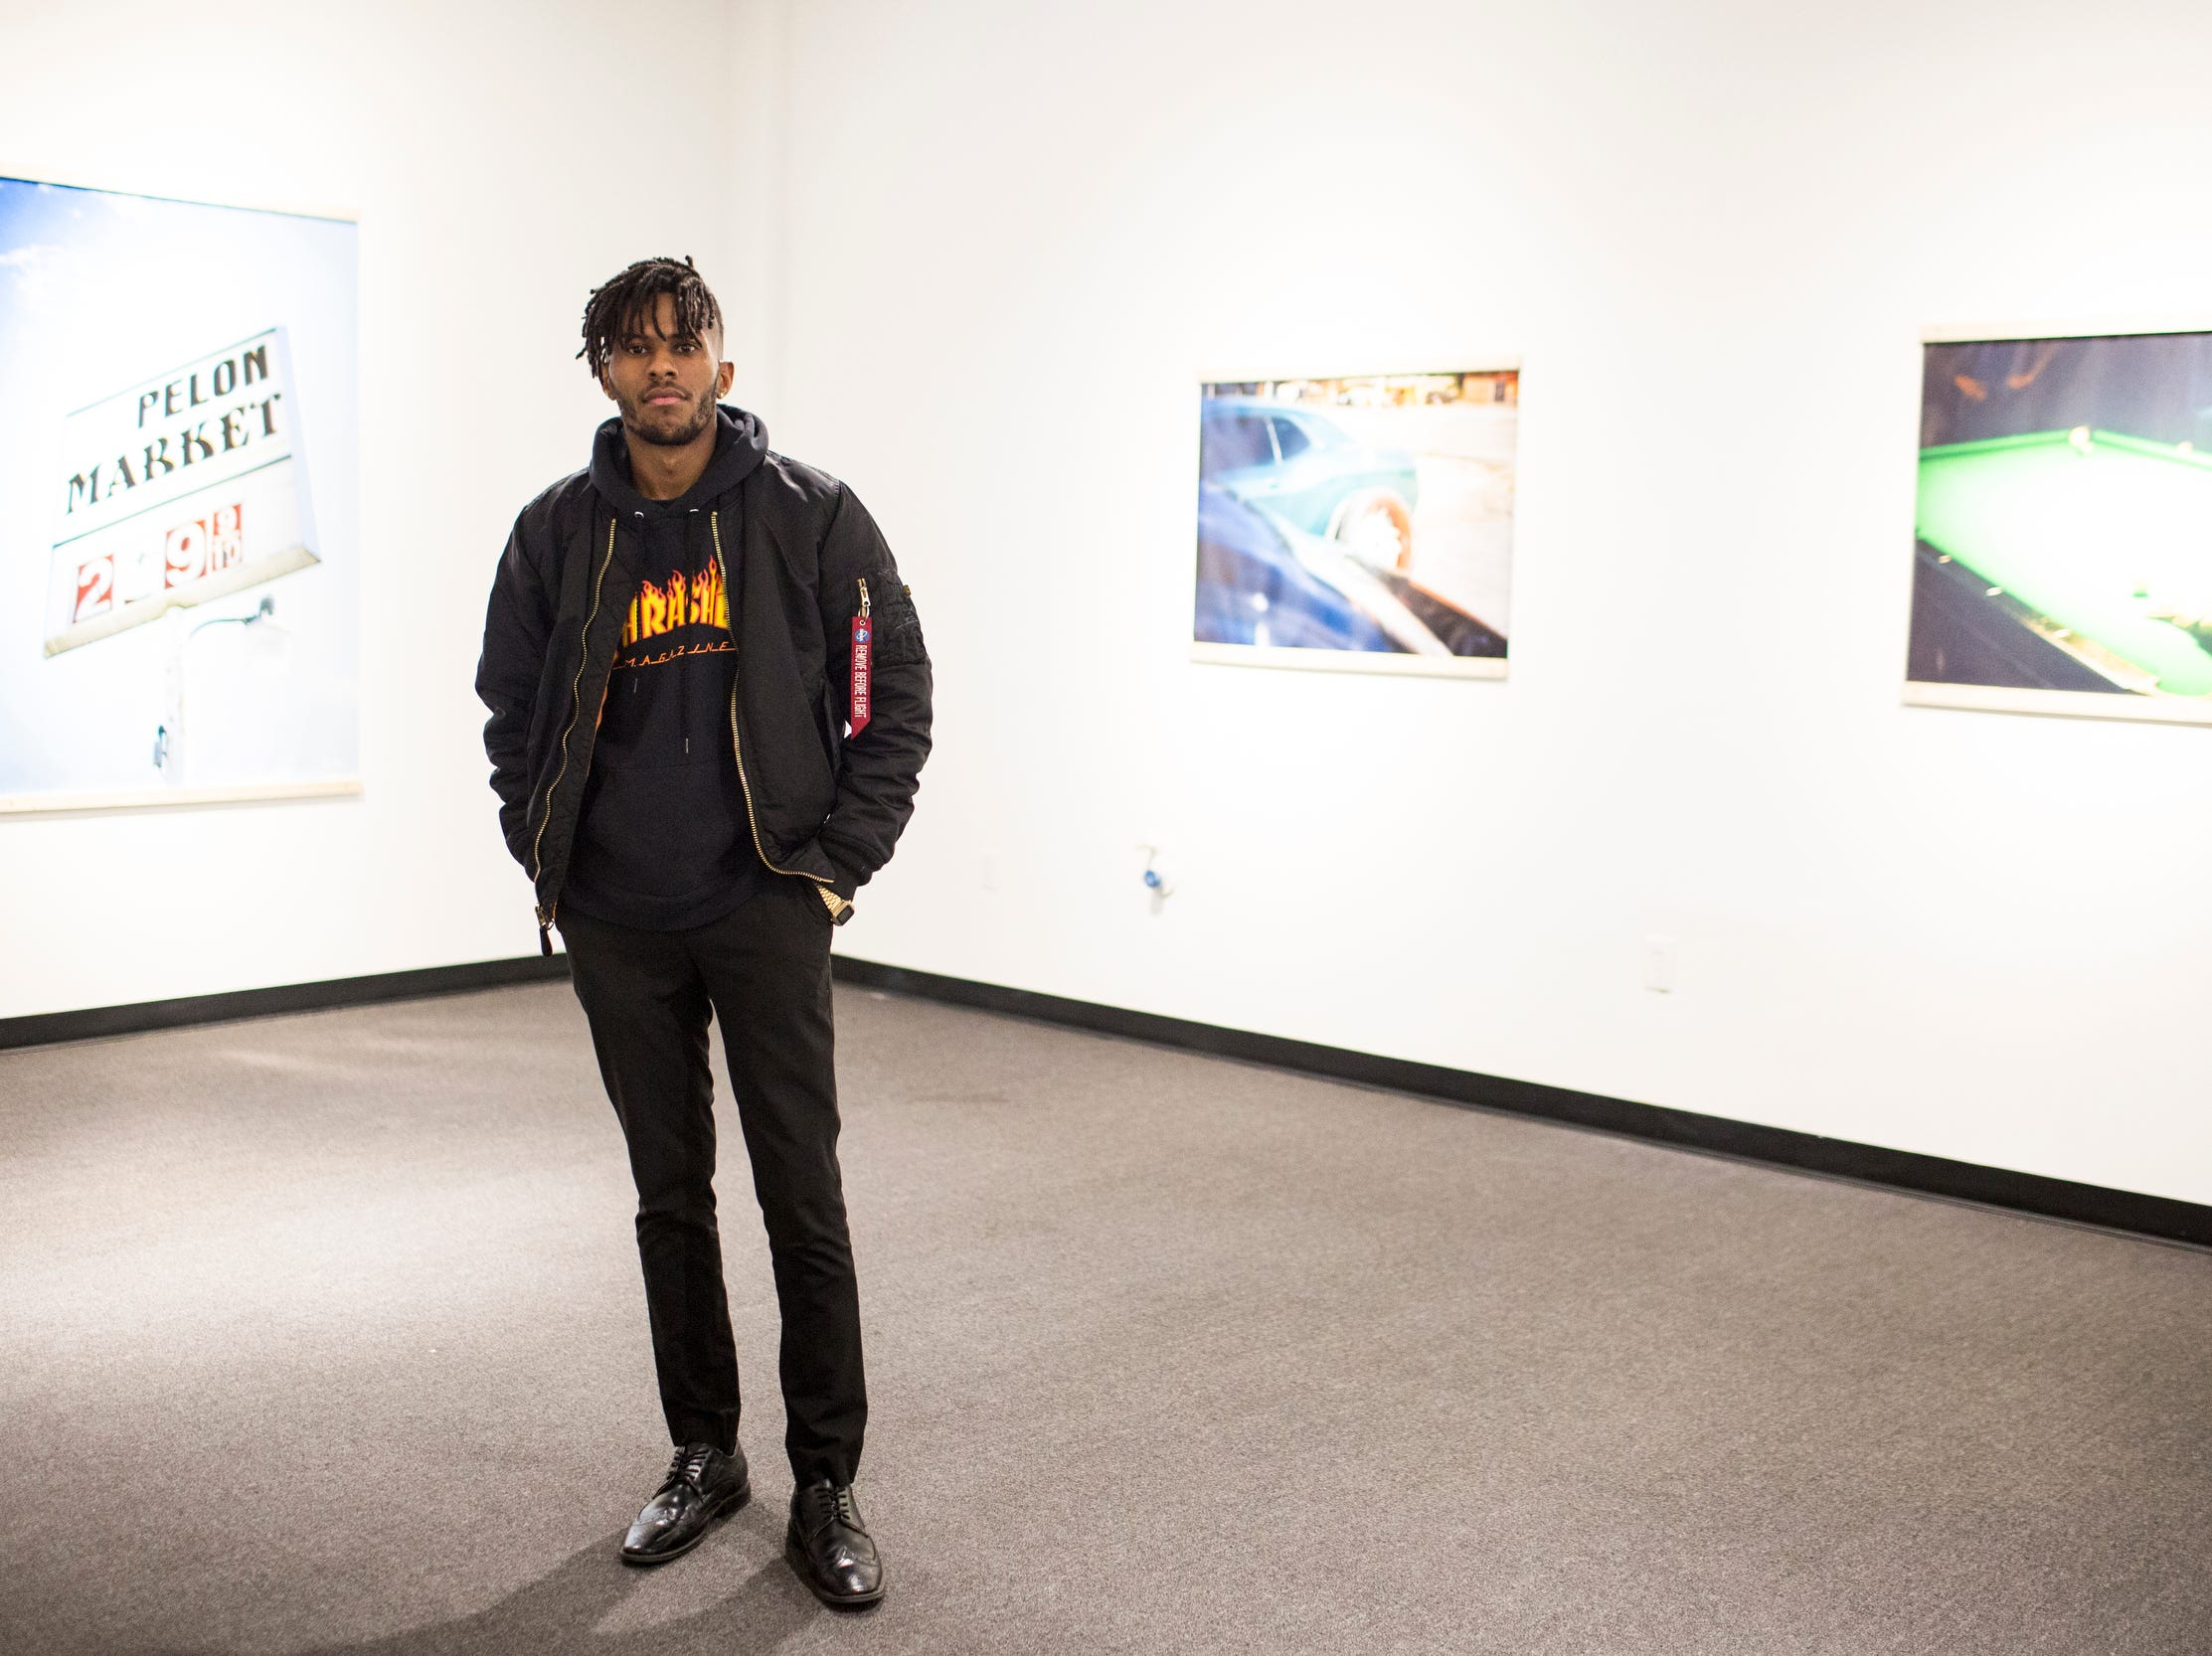 February 08, 2019 - Lawrence Matthews poses in front of some of his work during the PHTGRPHS show featuring work by Matthews and Lester Merriweather at The CMPLX. The CMPLX, a gallery, office and work space for The Collective, is located at 2234 Lamar Ave. in the Lamar Airways Shopping Center in Orange Mound.